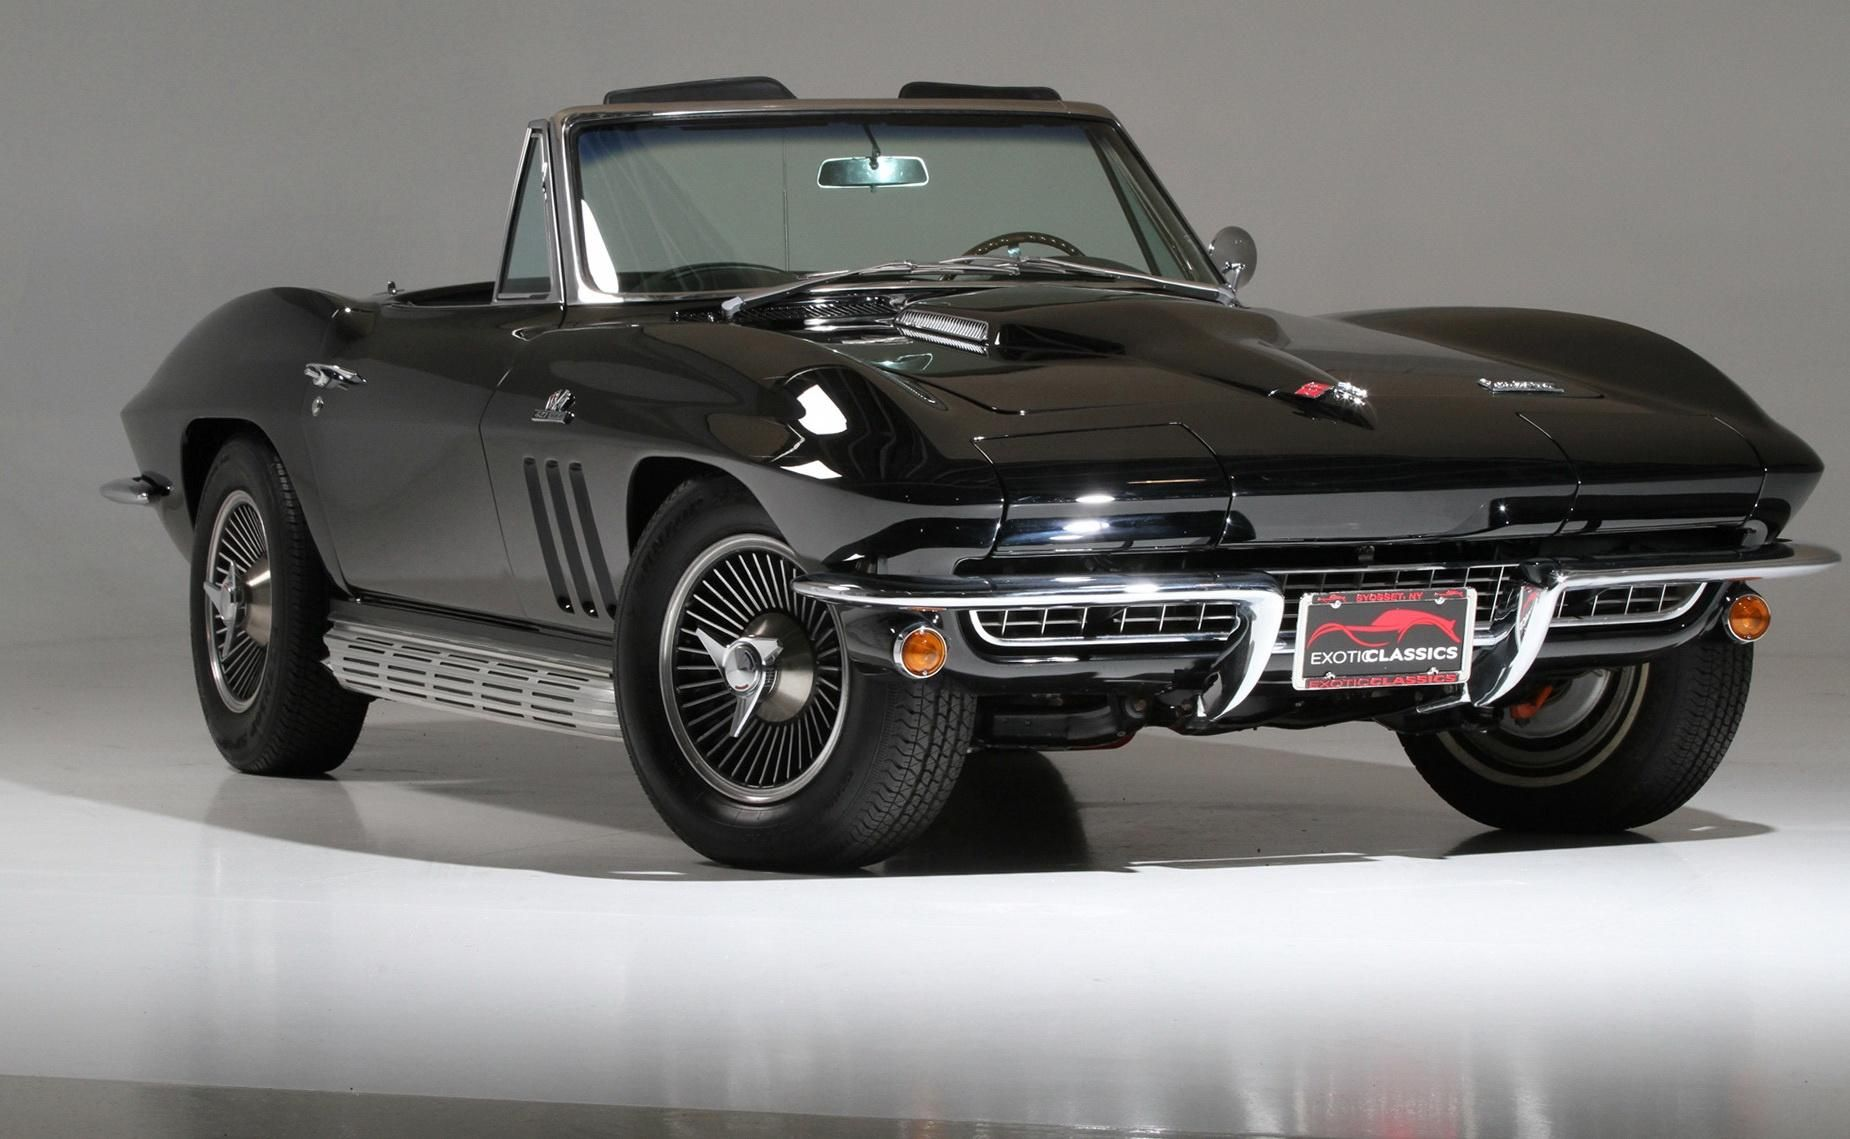 1968 chevrolet corvette convertible hardtop we had a vette like this from 74 1980 it was bright yellow we sold it for a downpayment on the hou